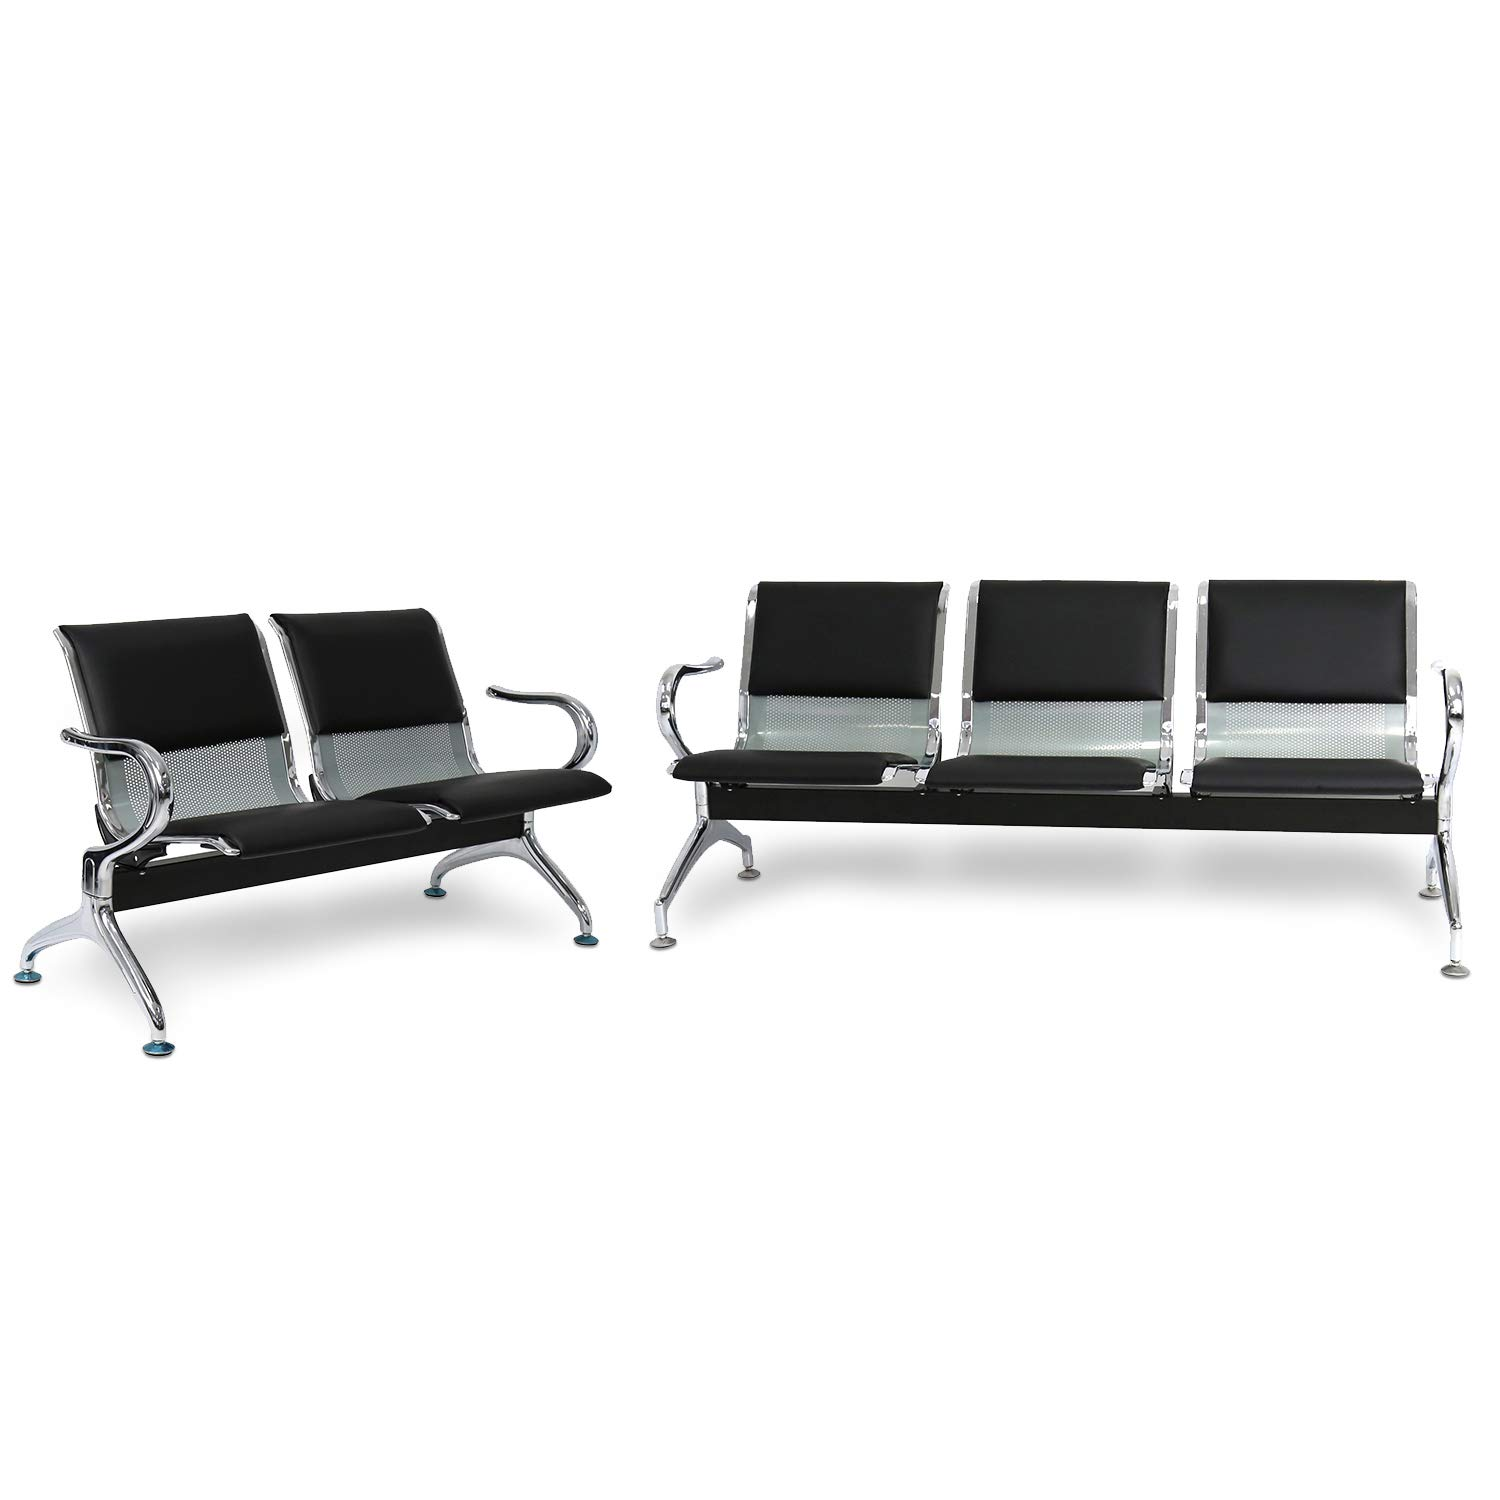 Peach Tree Reception Chairs Waiting Room Chair with Black Leather, Lobby Chairs for Reception Room, Office, Airport Reception Bench (5 Seat, Black)